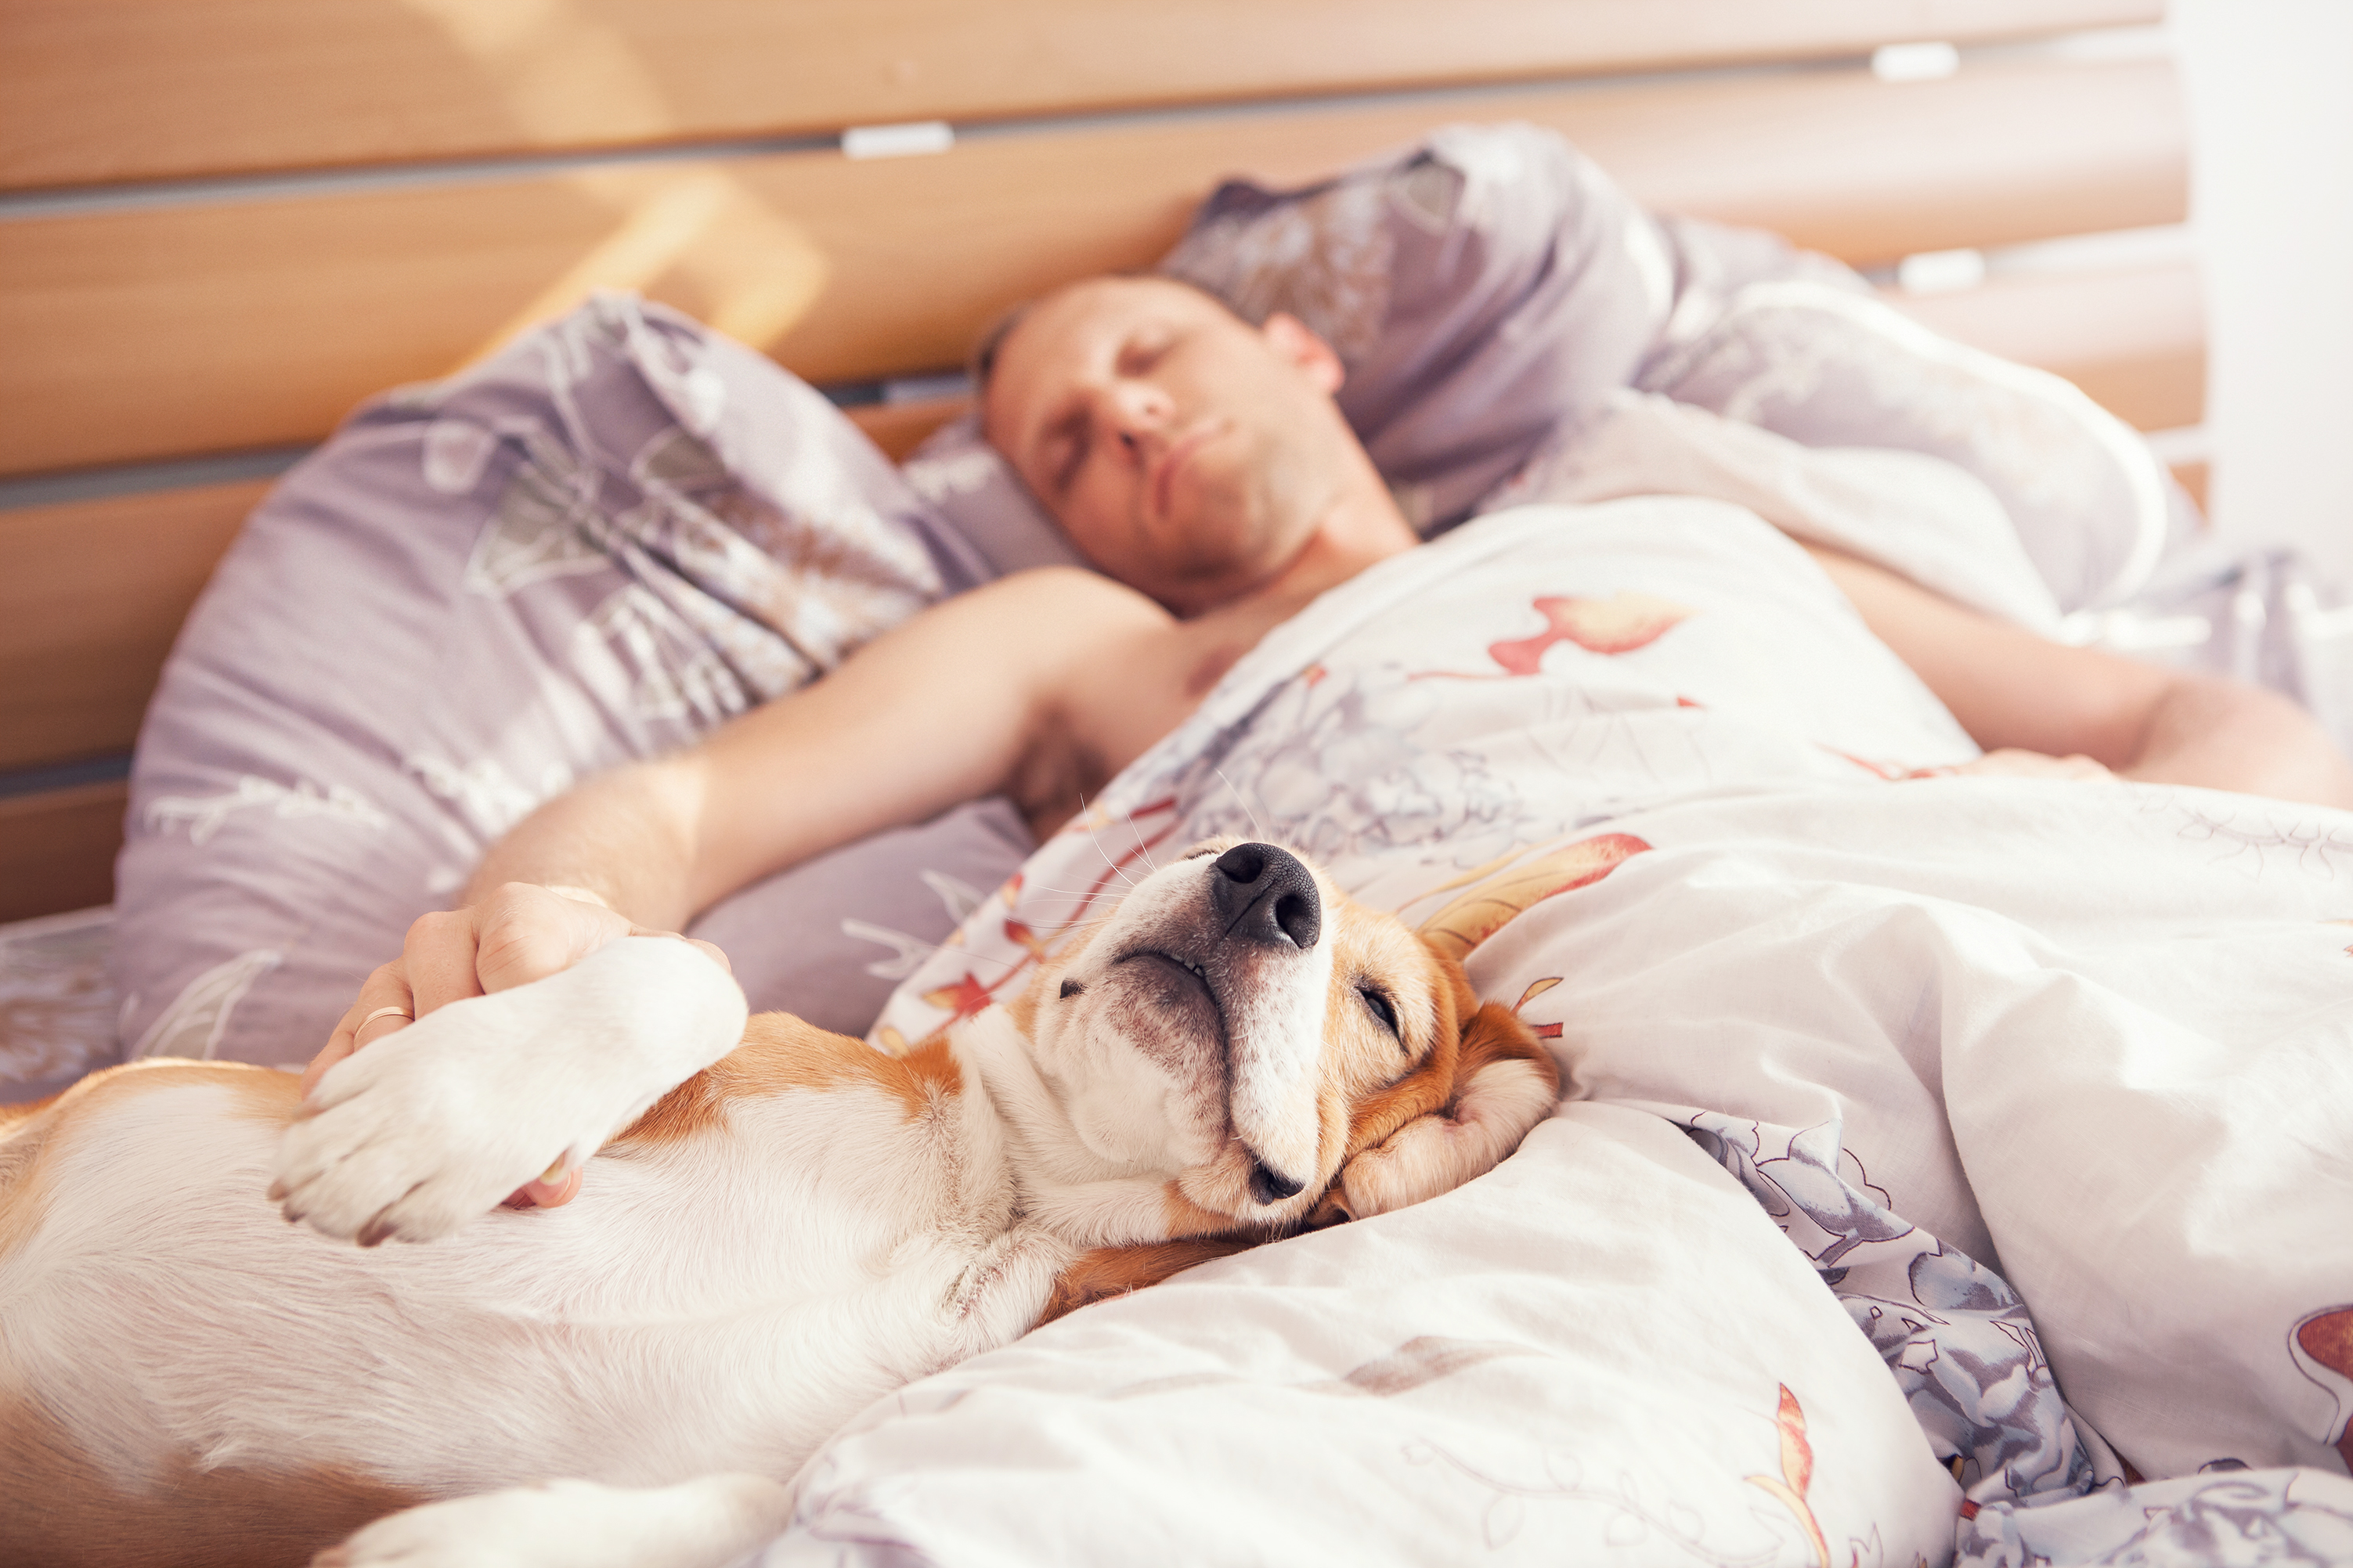 Four in ten owners let their dogs sleep next to them